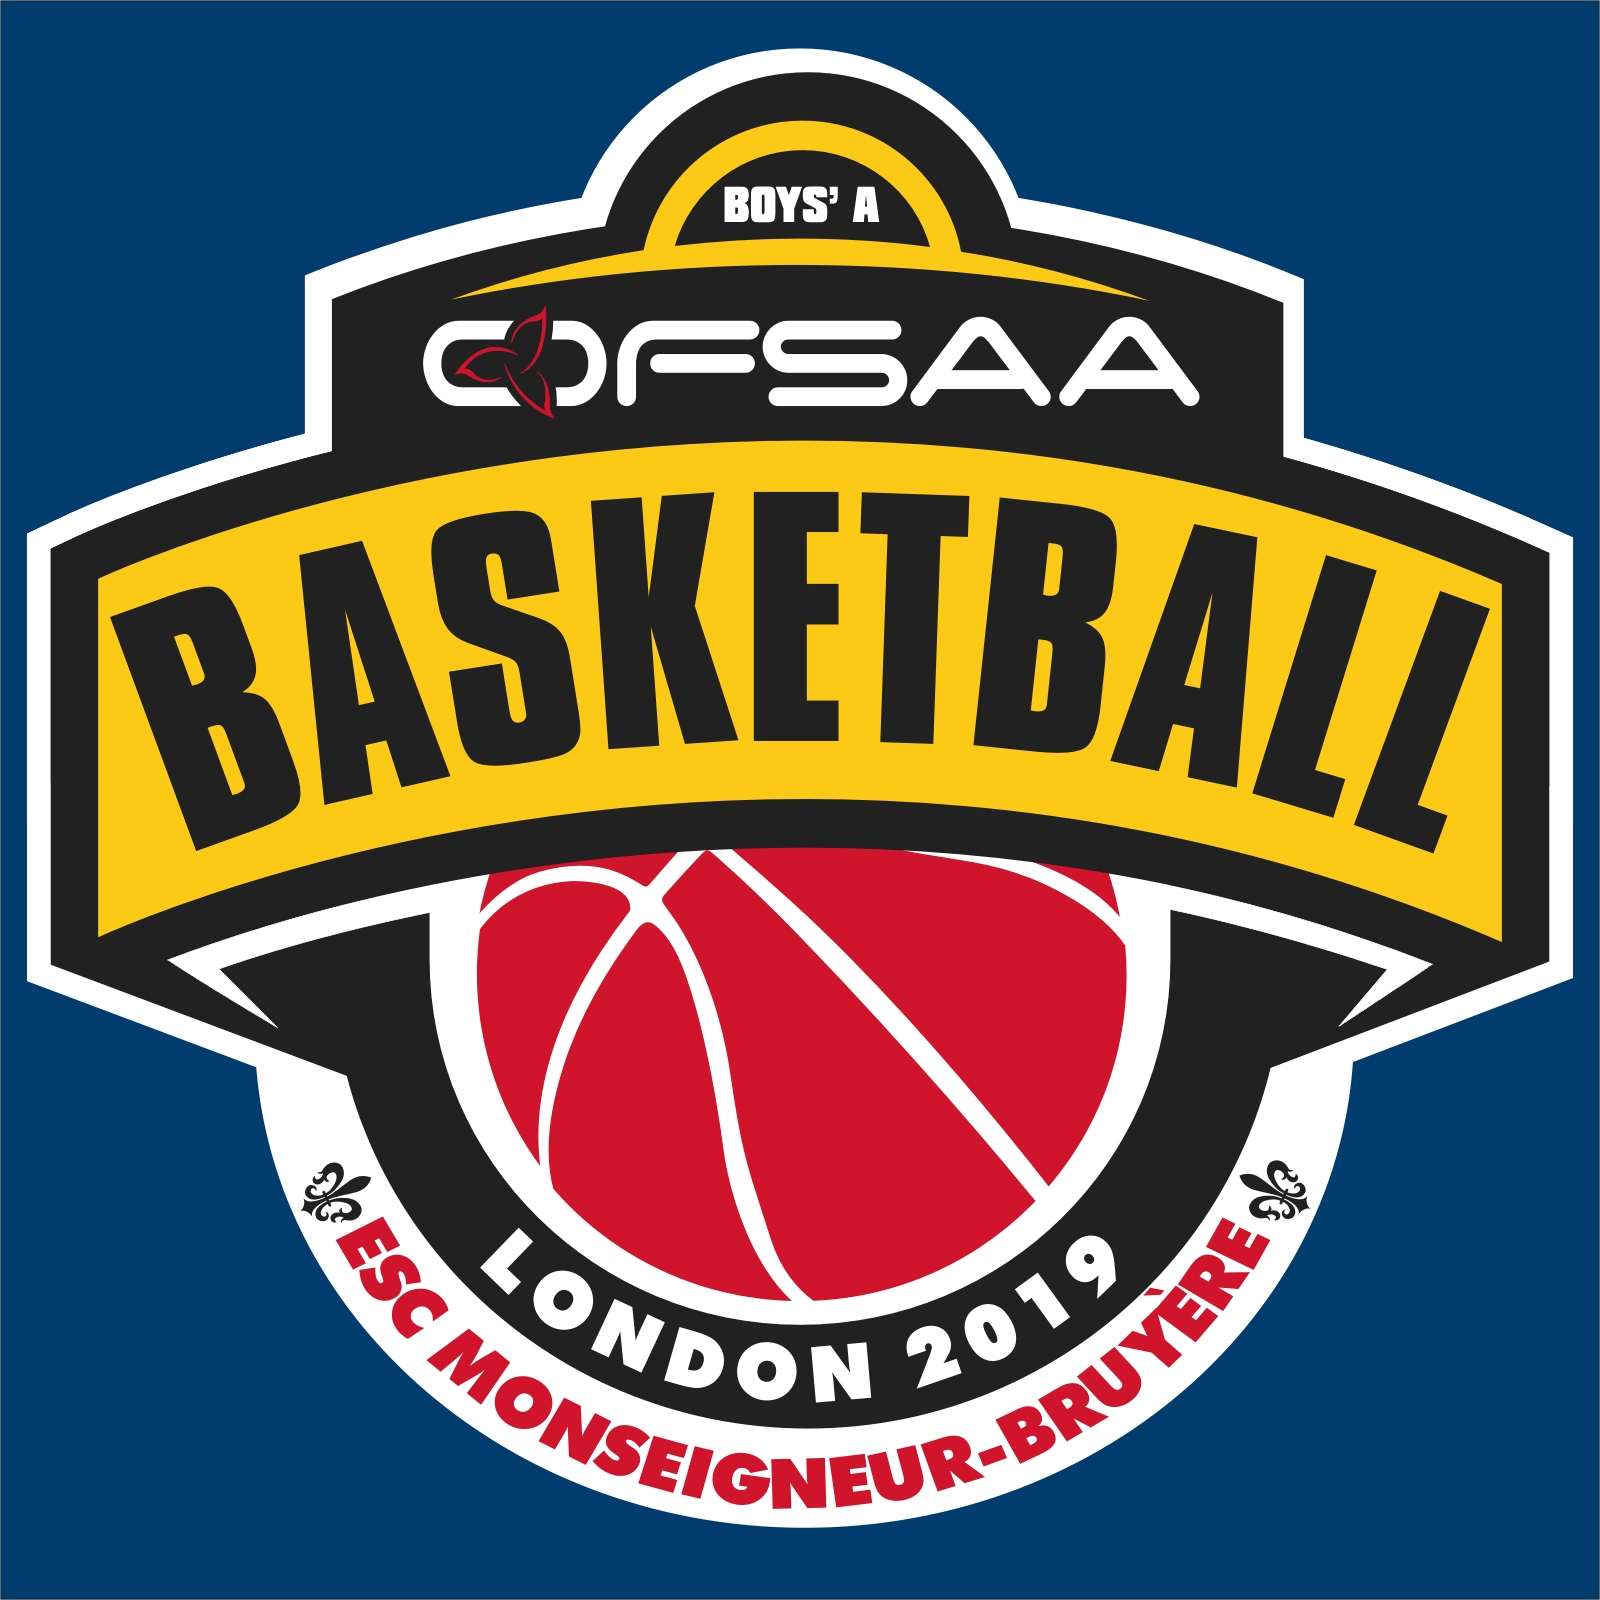 2019 Boys A Basketball logo blue.jpg